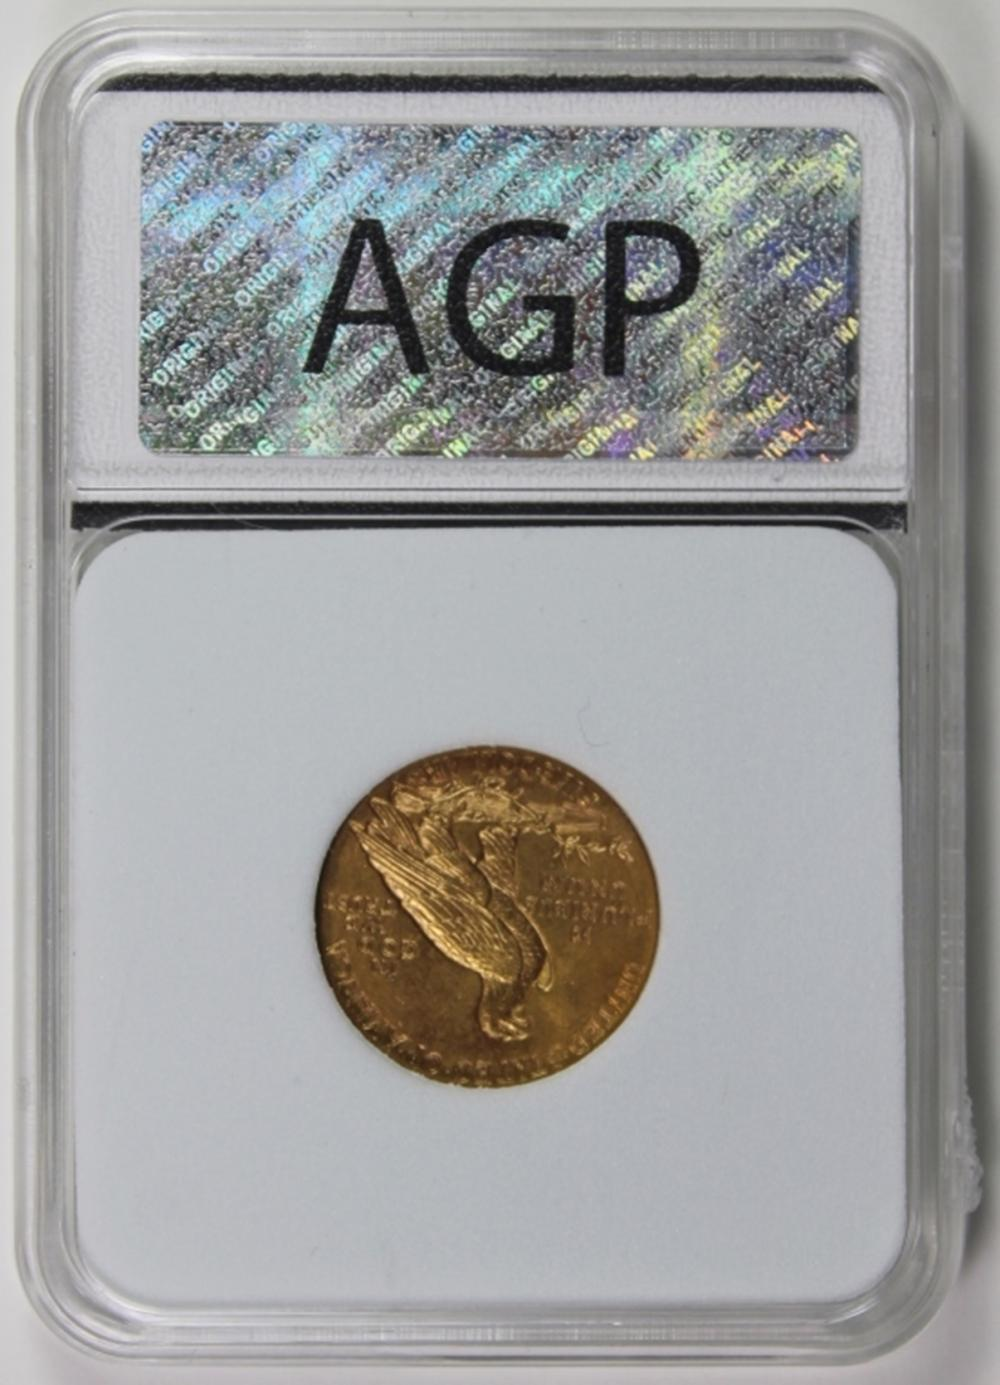 Lot 163: 1910 $5.00 GOLD INDIAN